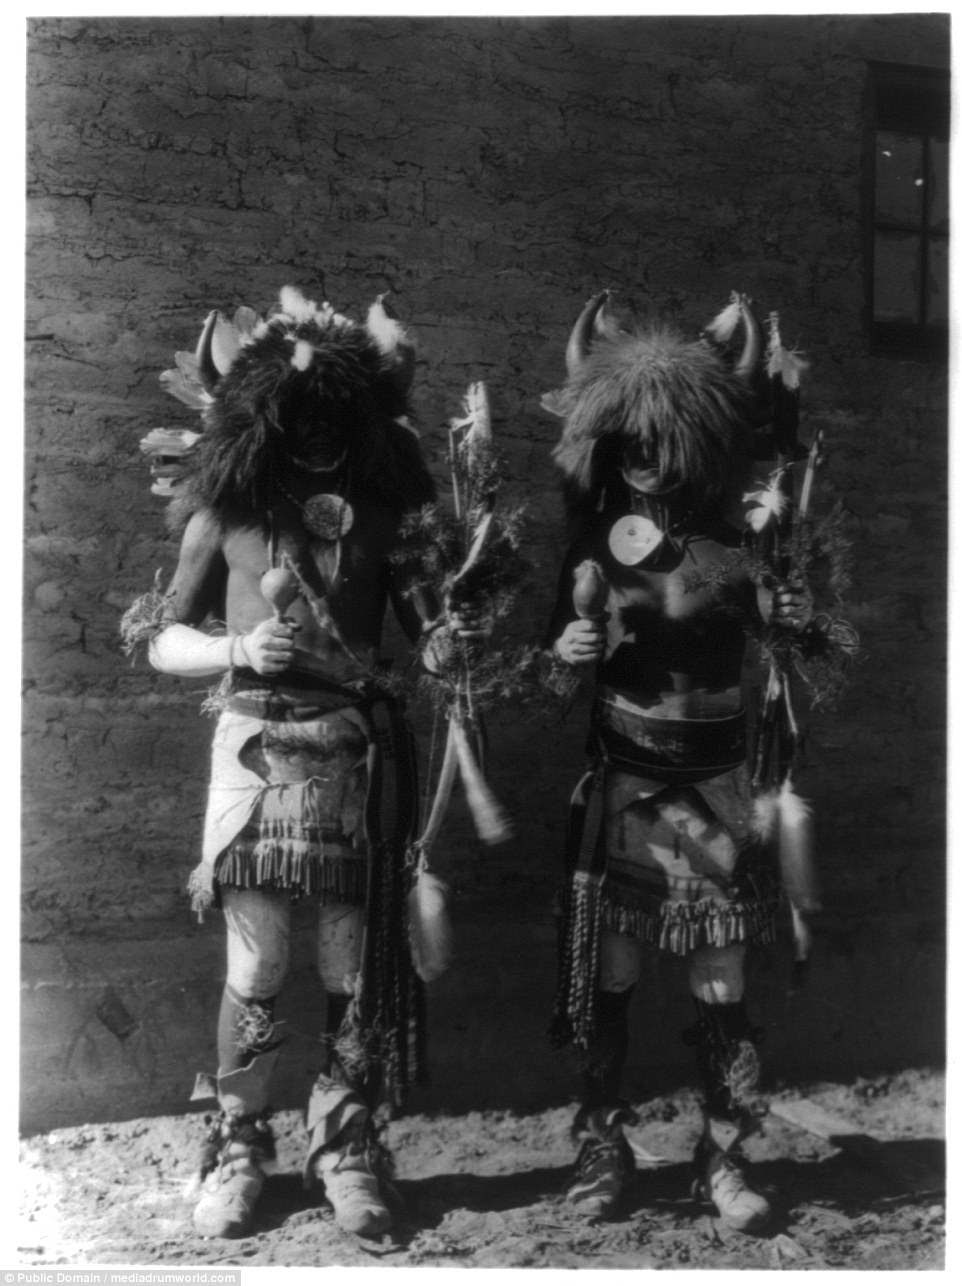 Two Native American men in costumes wearing horns of buffaloes pictured in 1907